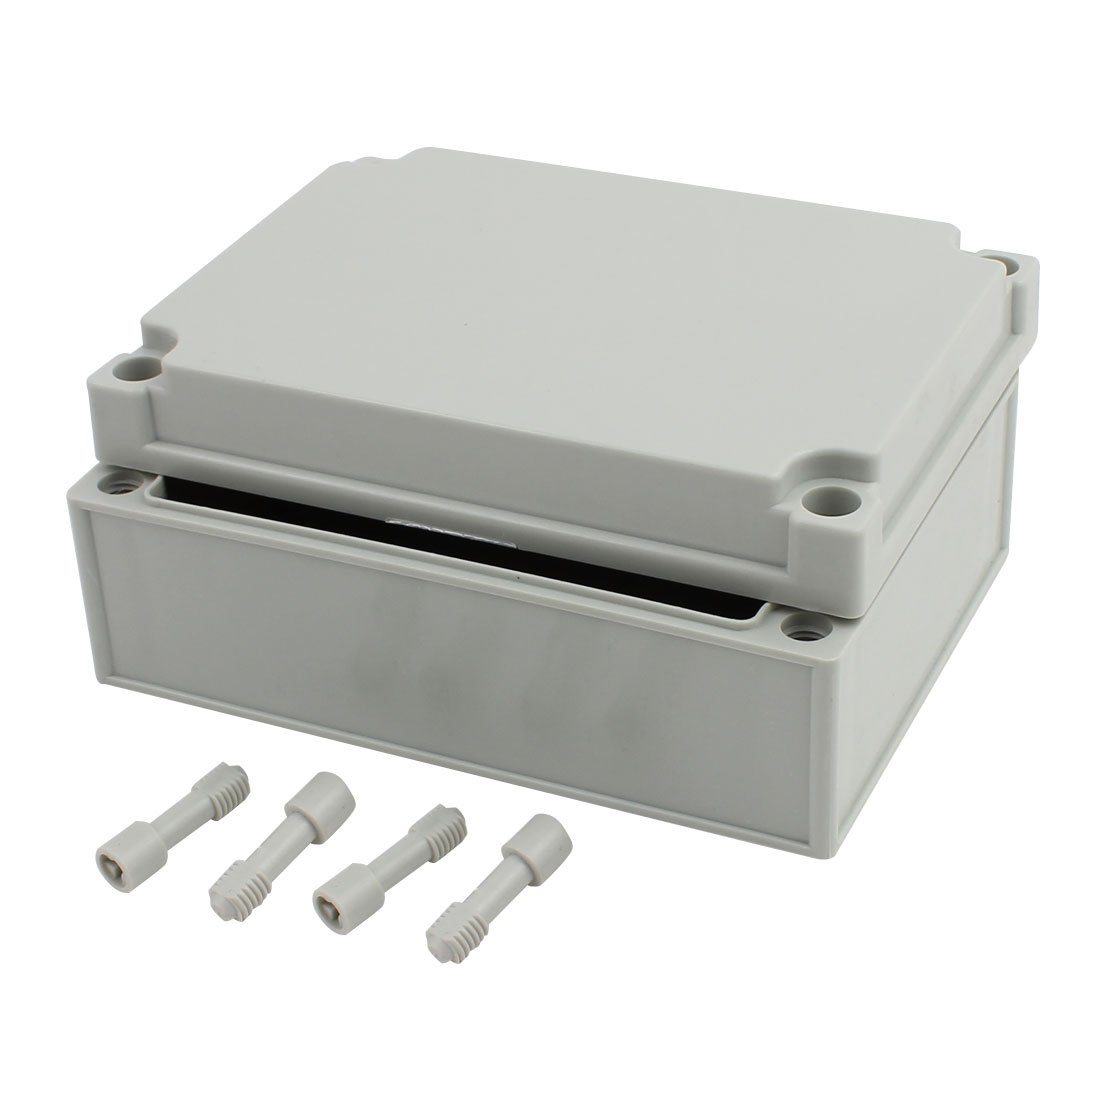 uxcell 175mm x 125mm x 75mm Dustproof IP65 Junction Box DIY Case Enclosure Gray